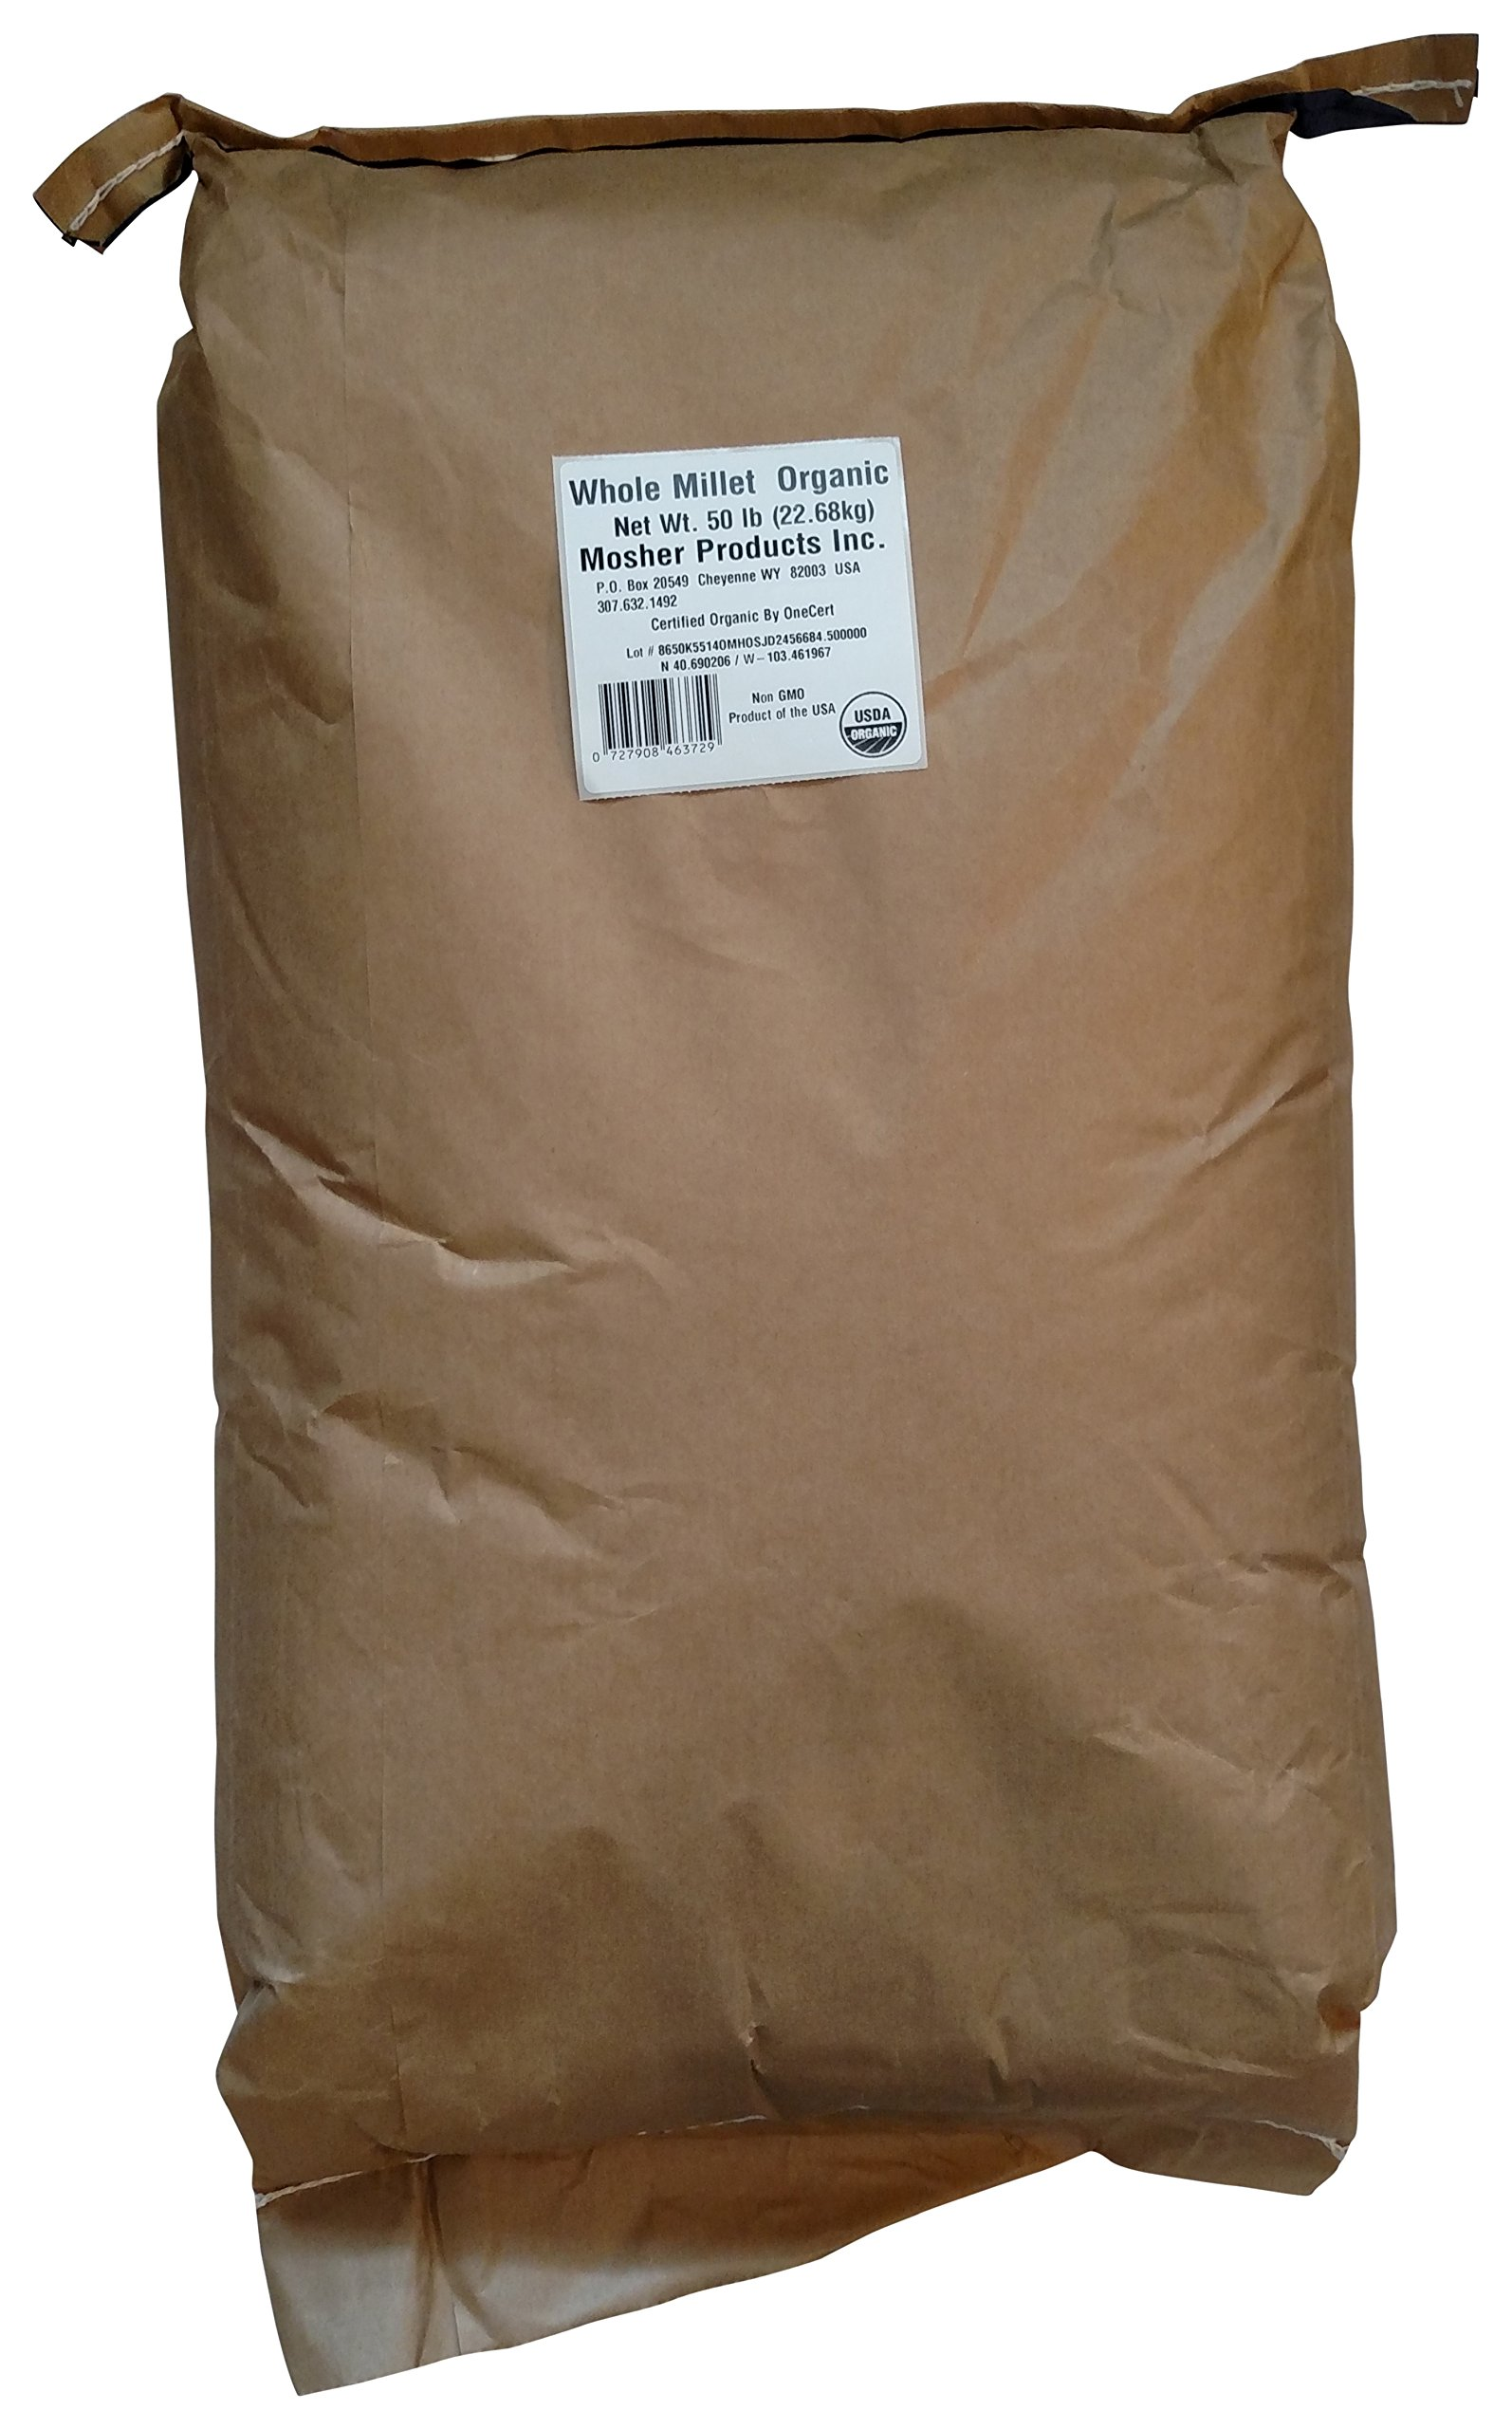 Mosher Products Organic Whole Millet Bag, 50 Pound